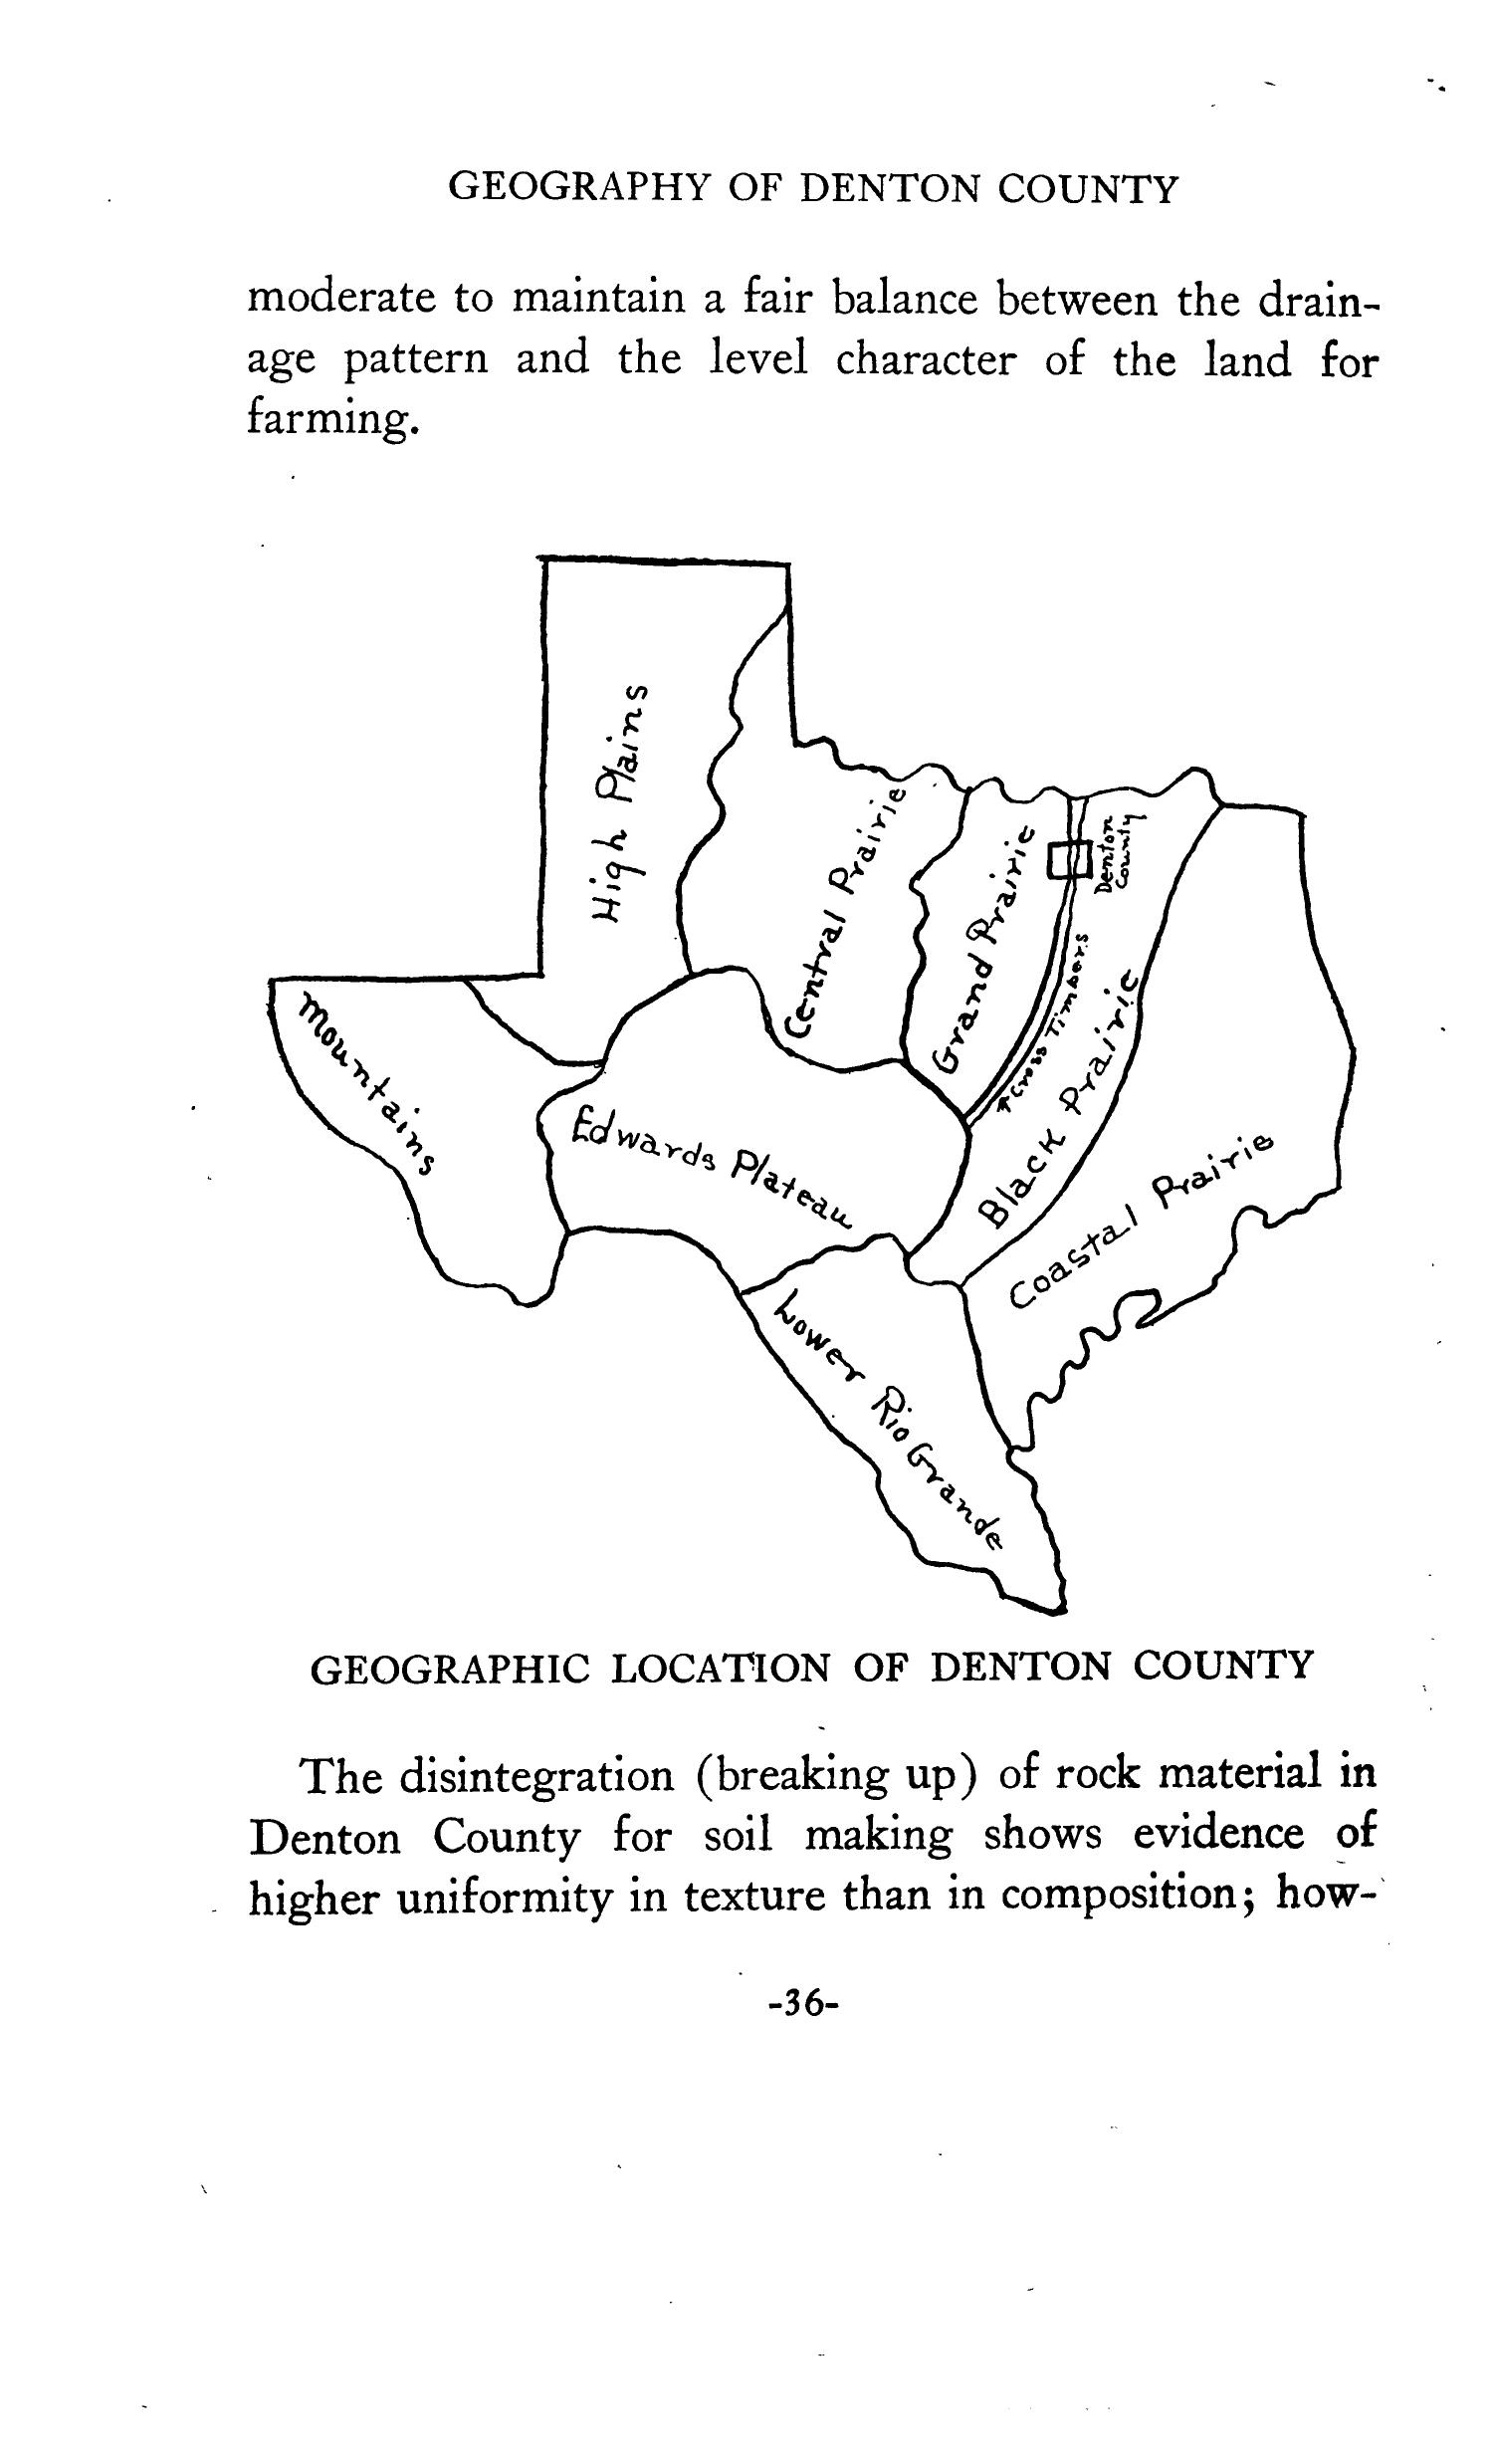 Geography of Denton County                                                                                                      36